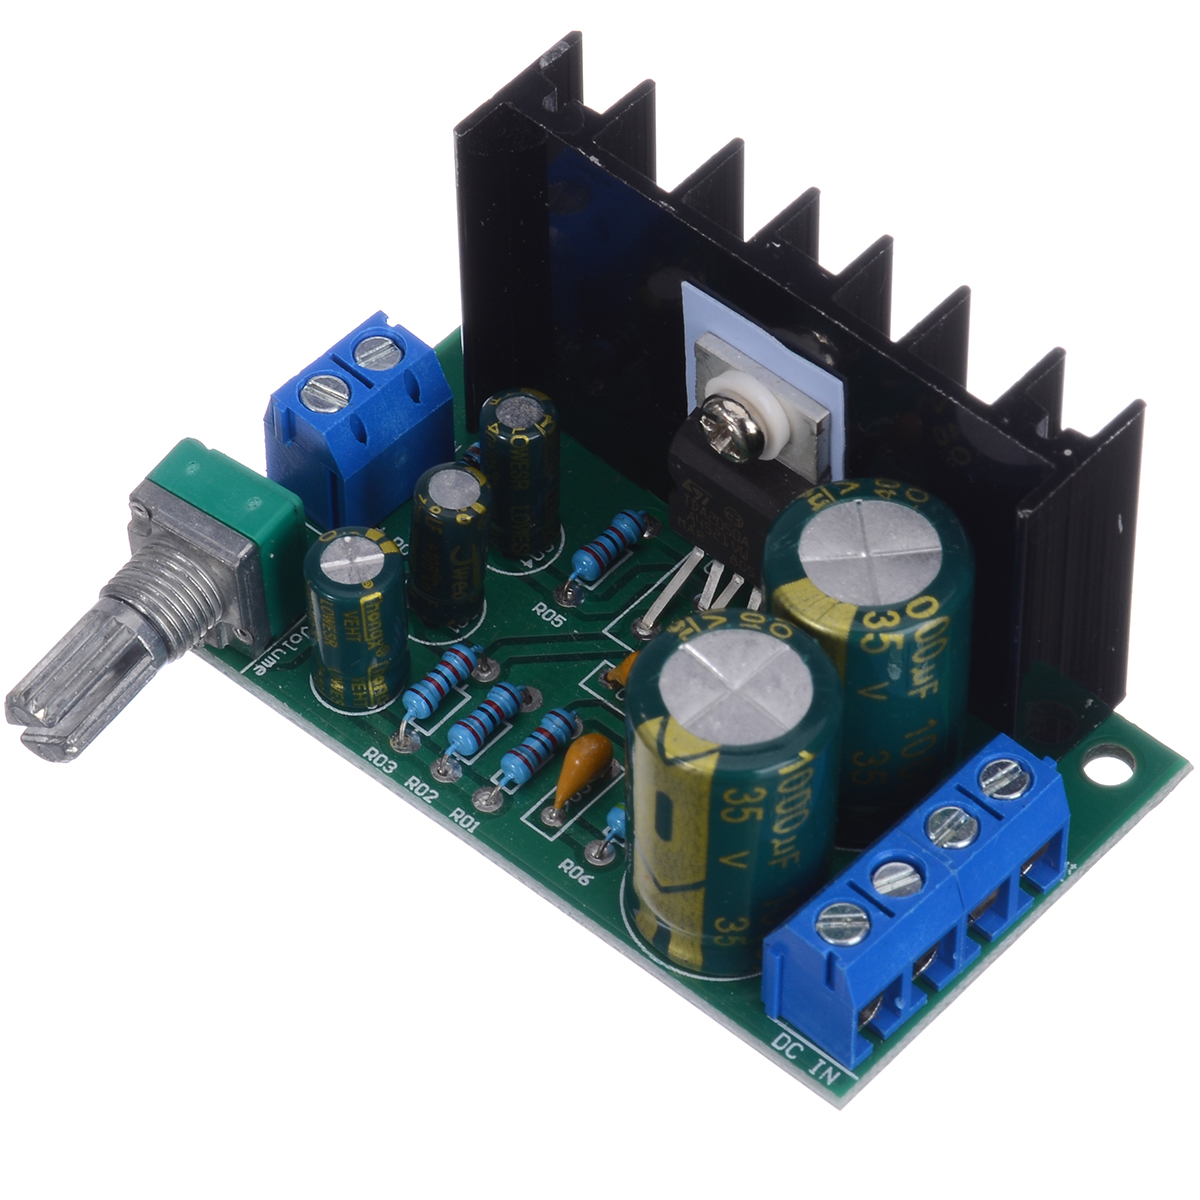 Newest TDA2050 Amplifier DC 12-24V Mono Channel Audio Power Amplifier Board Module 5W-120W DIY Modules 60x35x40mm